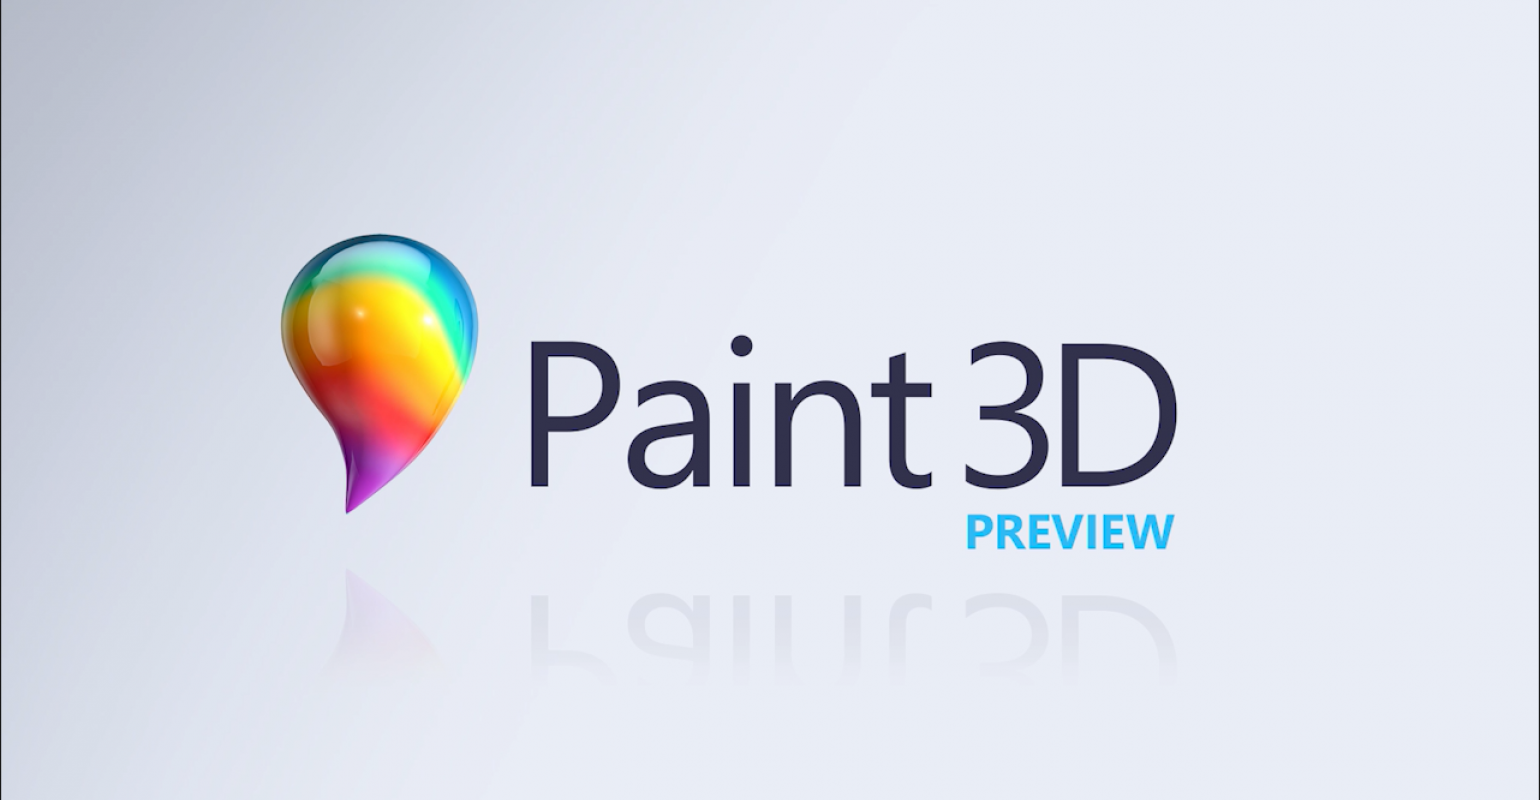 Apps | Take a look at the new Paint 3D Preview App for